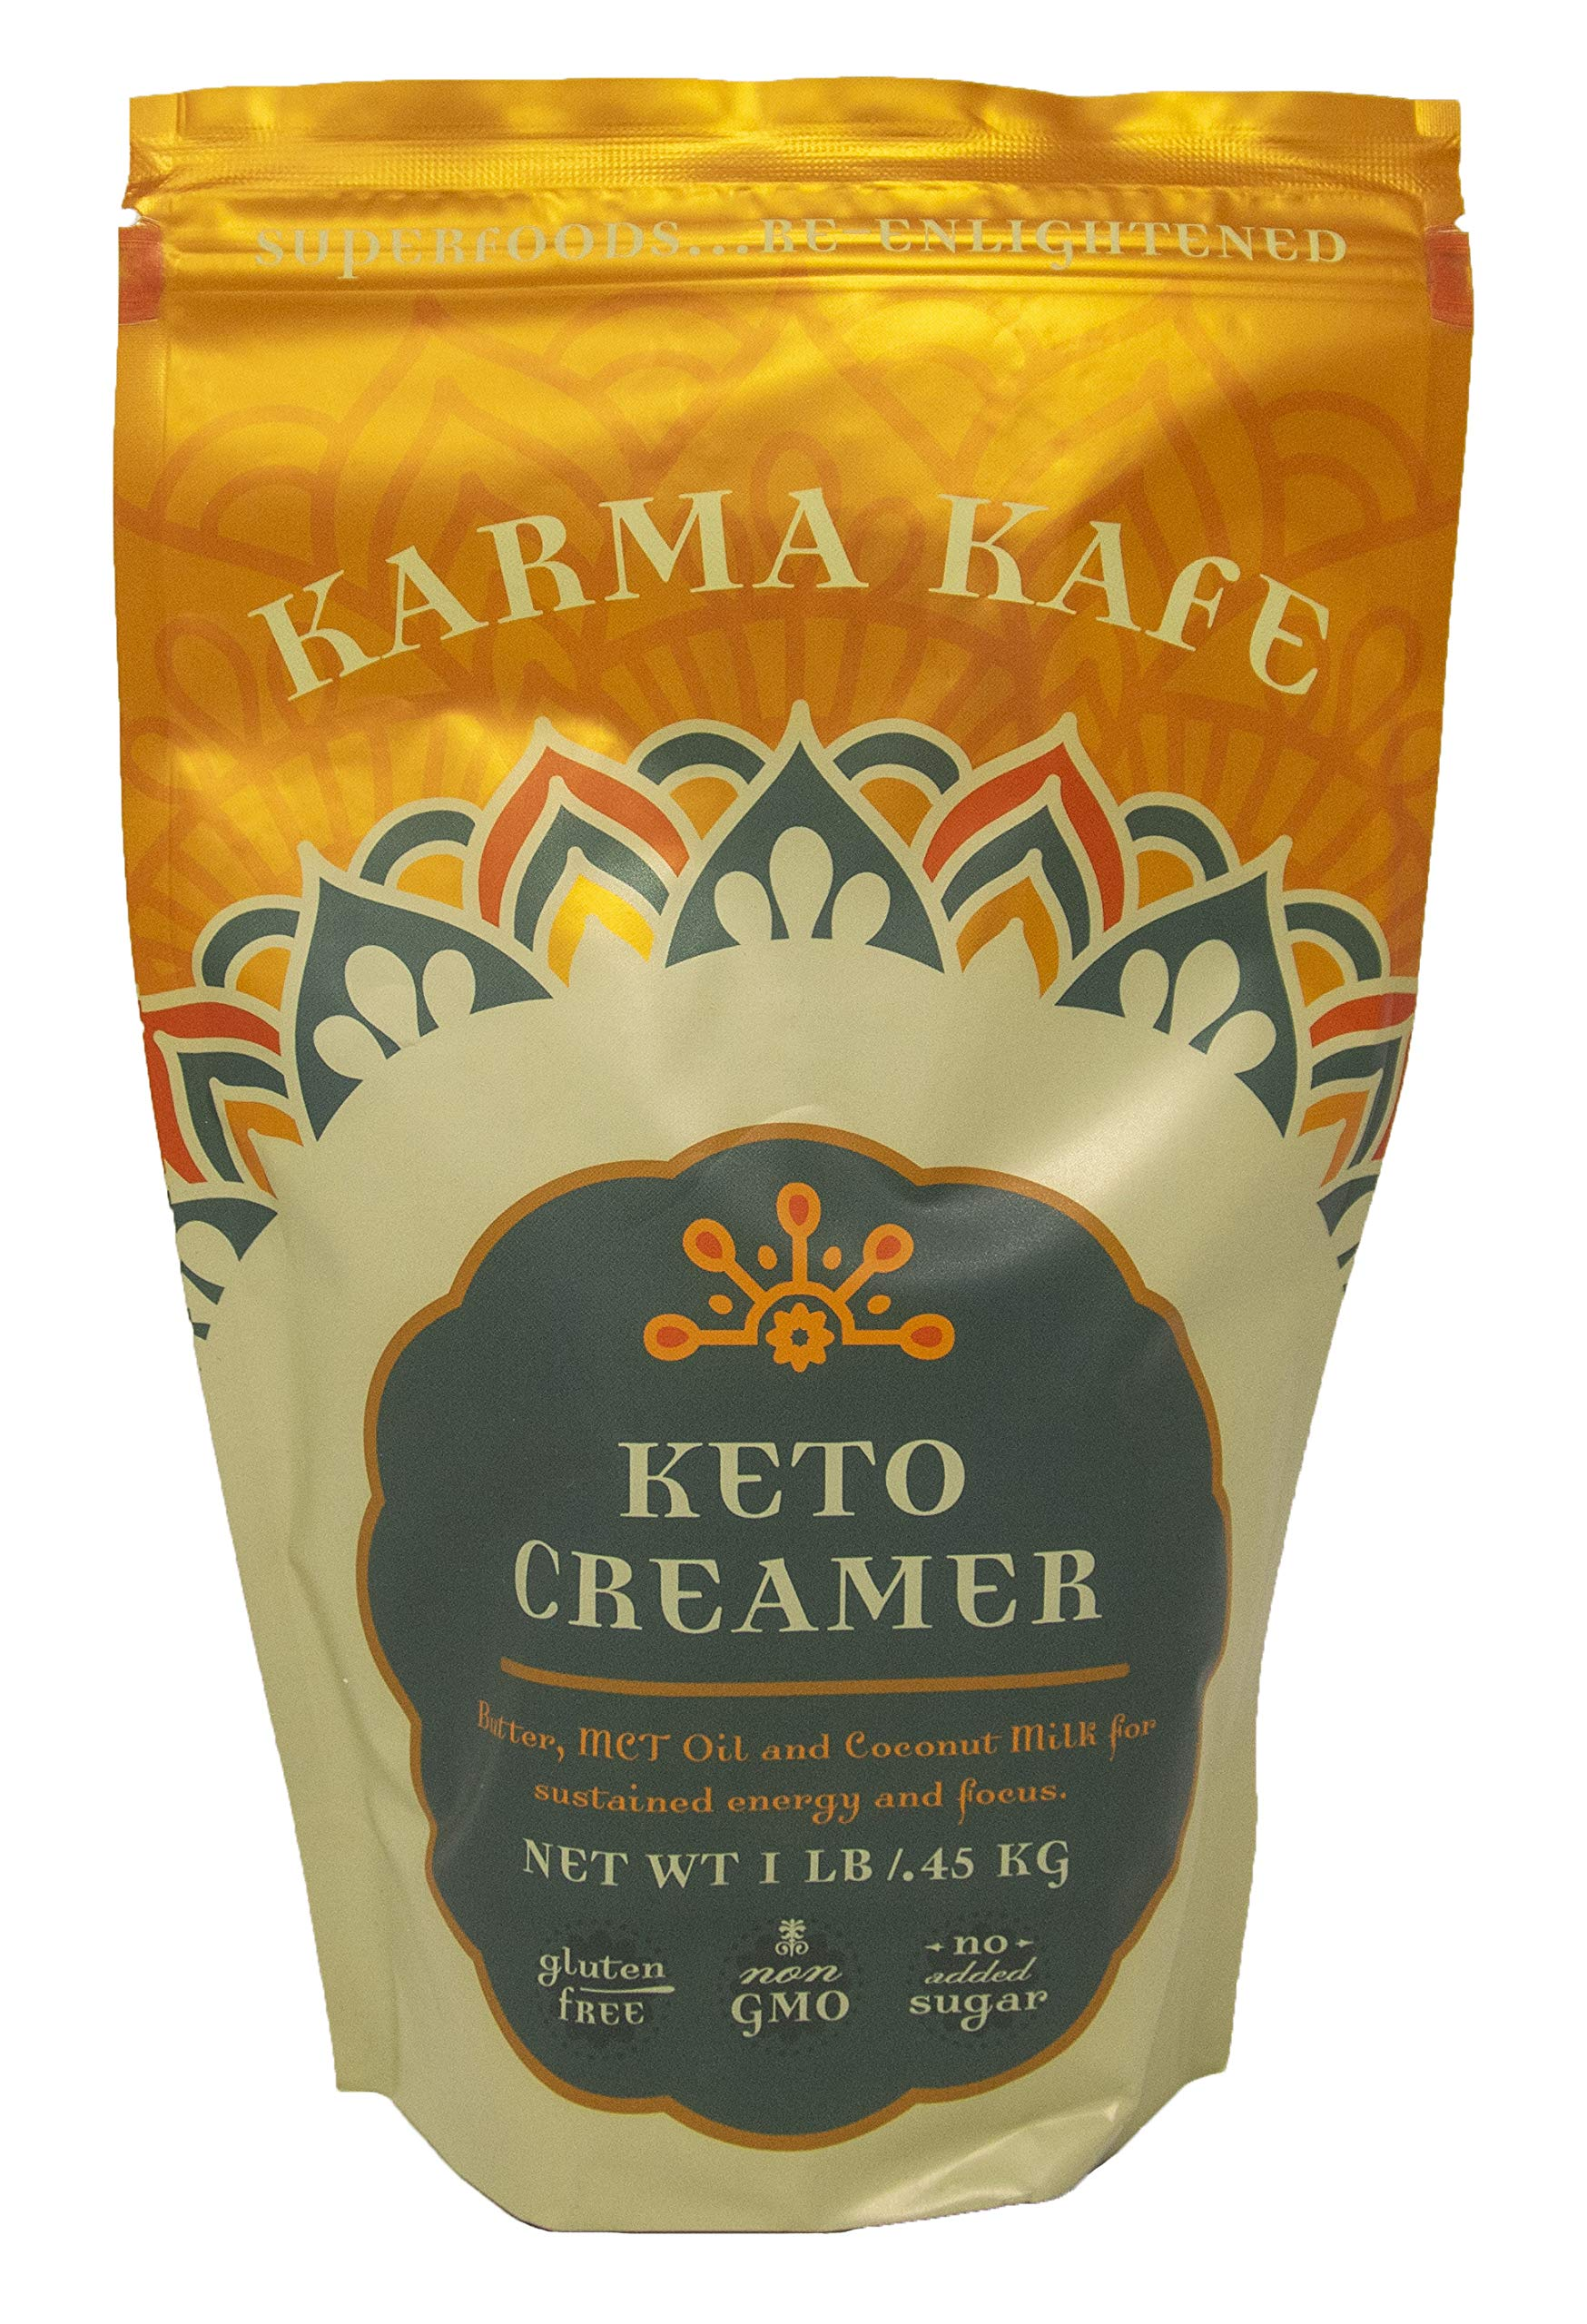 Karma Kafe Keto Creamer with MCT oil, Coconut Milk, Butter, High Fat BPC Coffee Creamer Superfood - 1 Pound Resealable Package by Karma Kafe